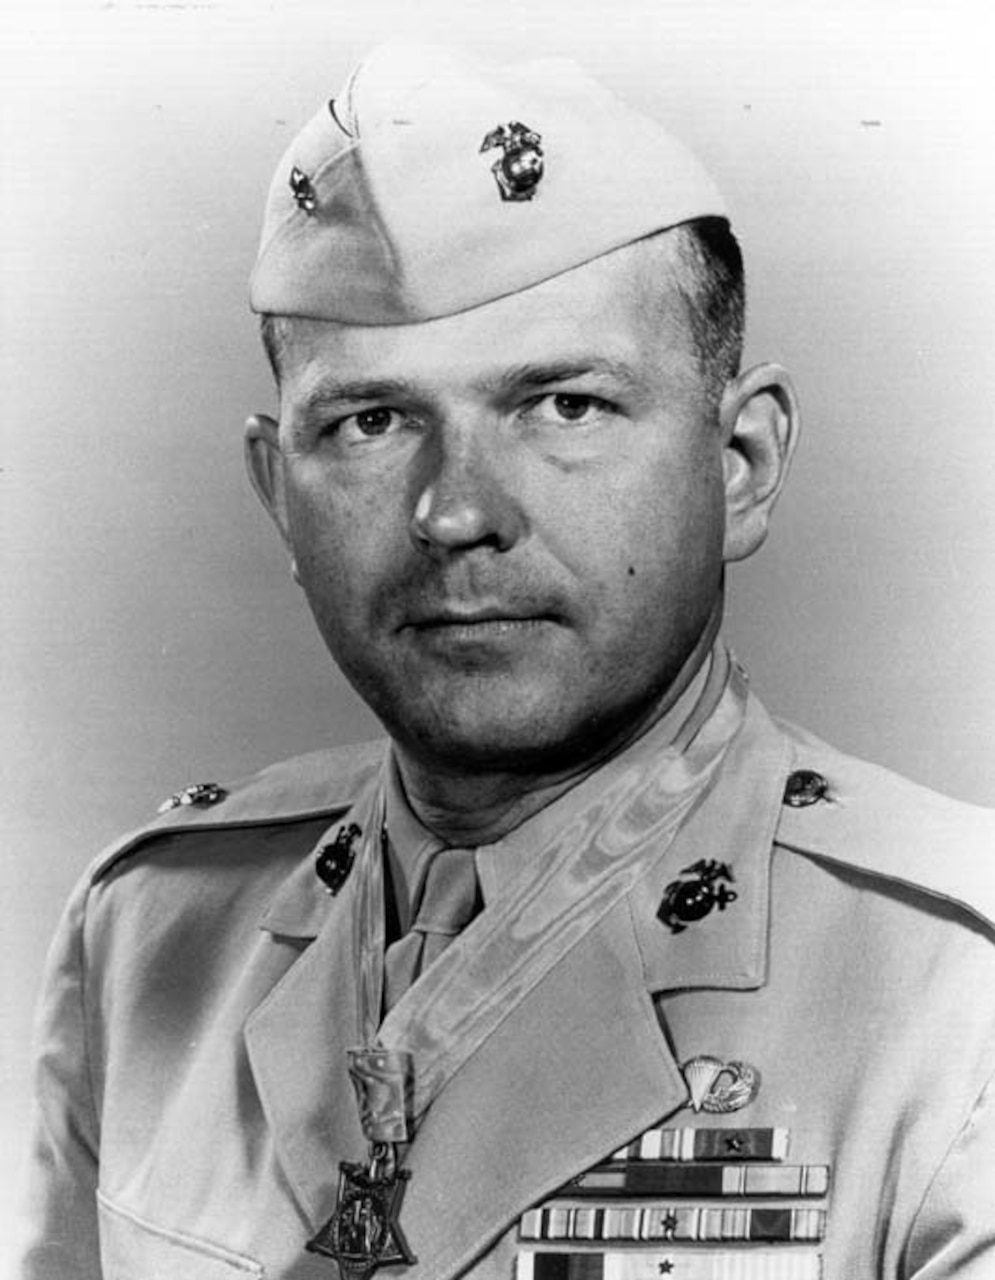 Photo of a Marine Corps colonel wearing his khaki dress uniform, cap and Medal of Honor.